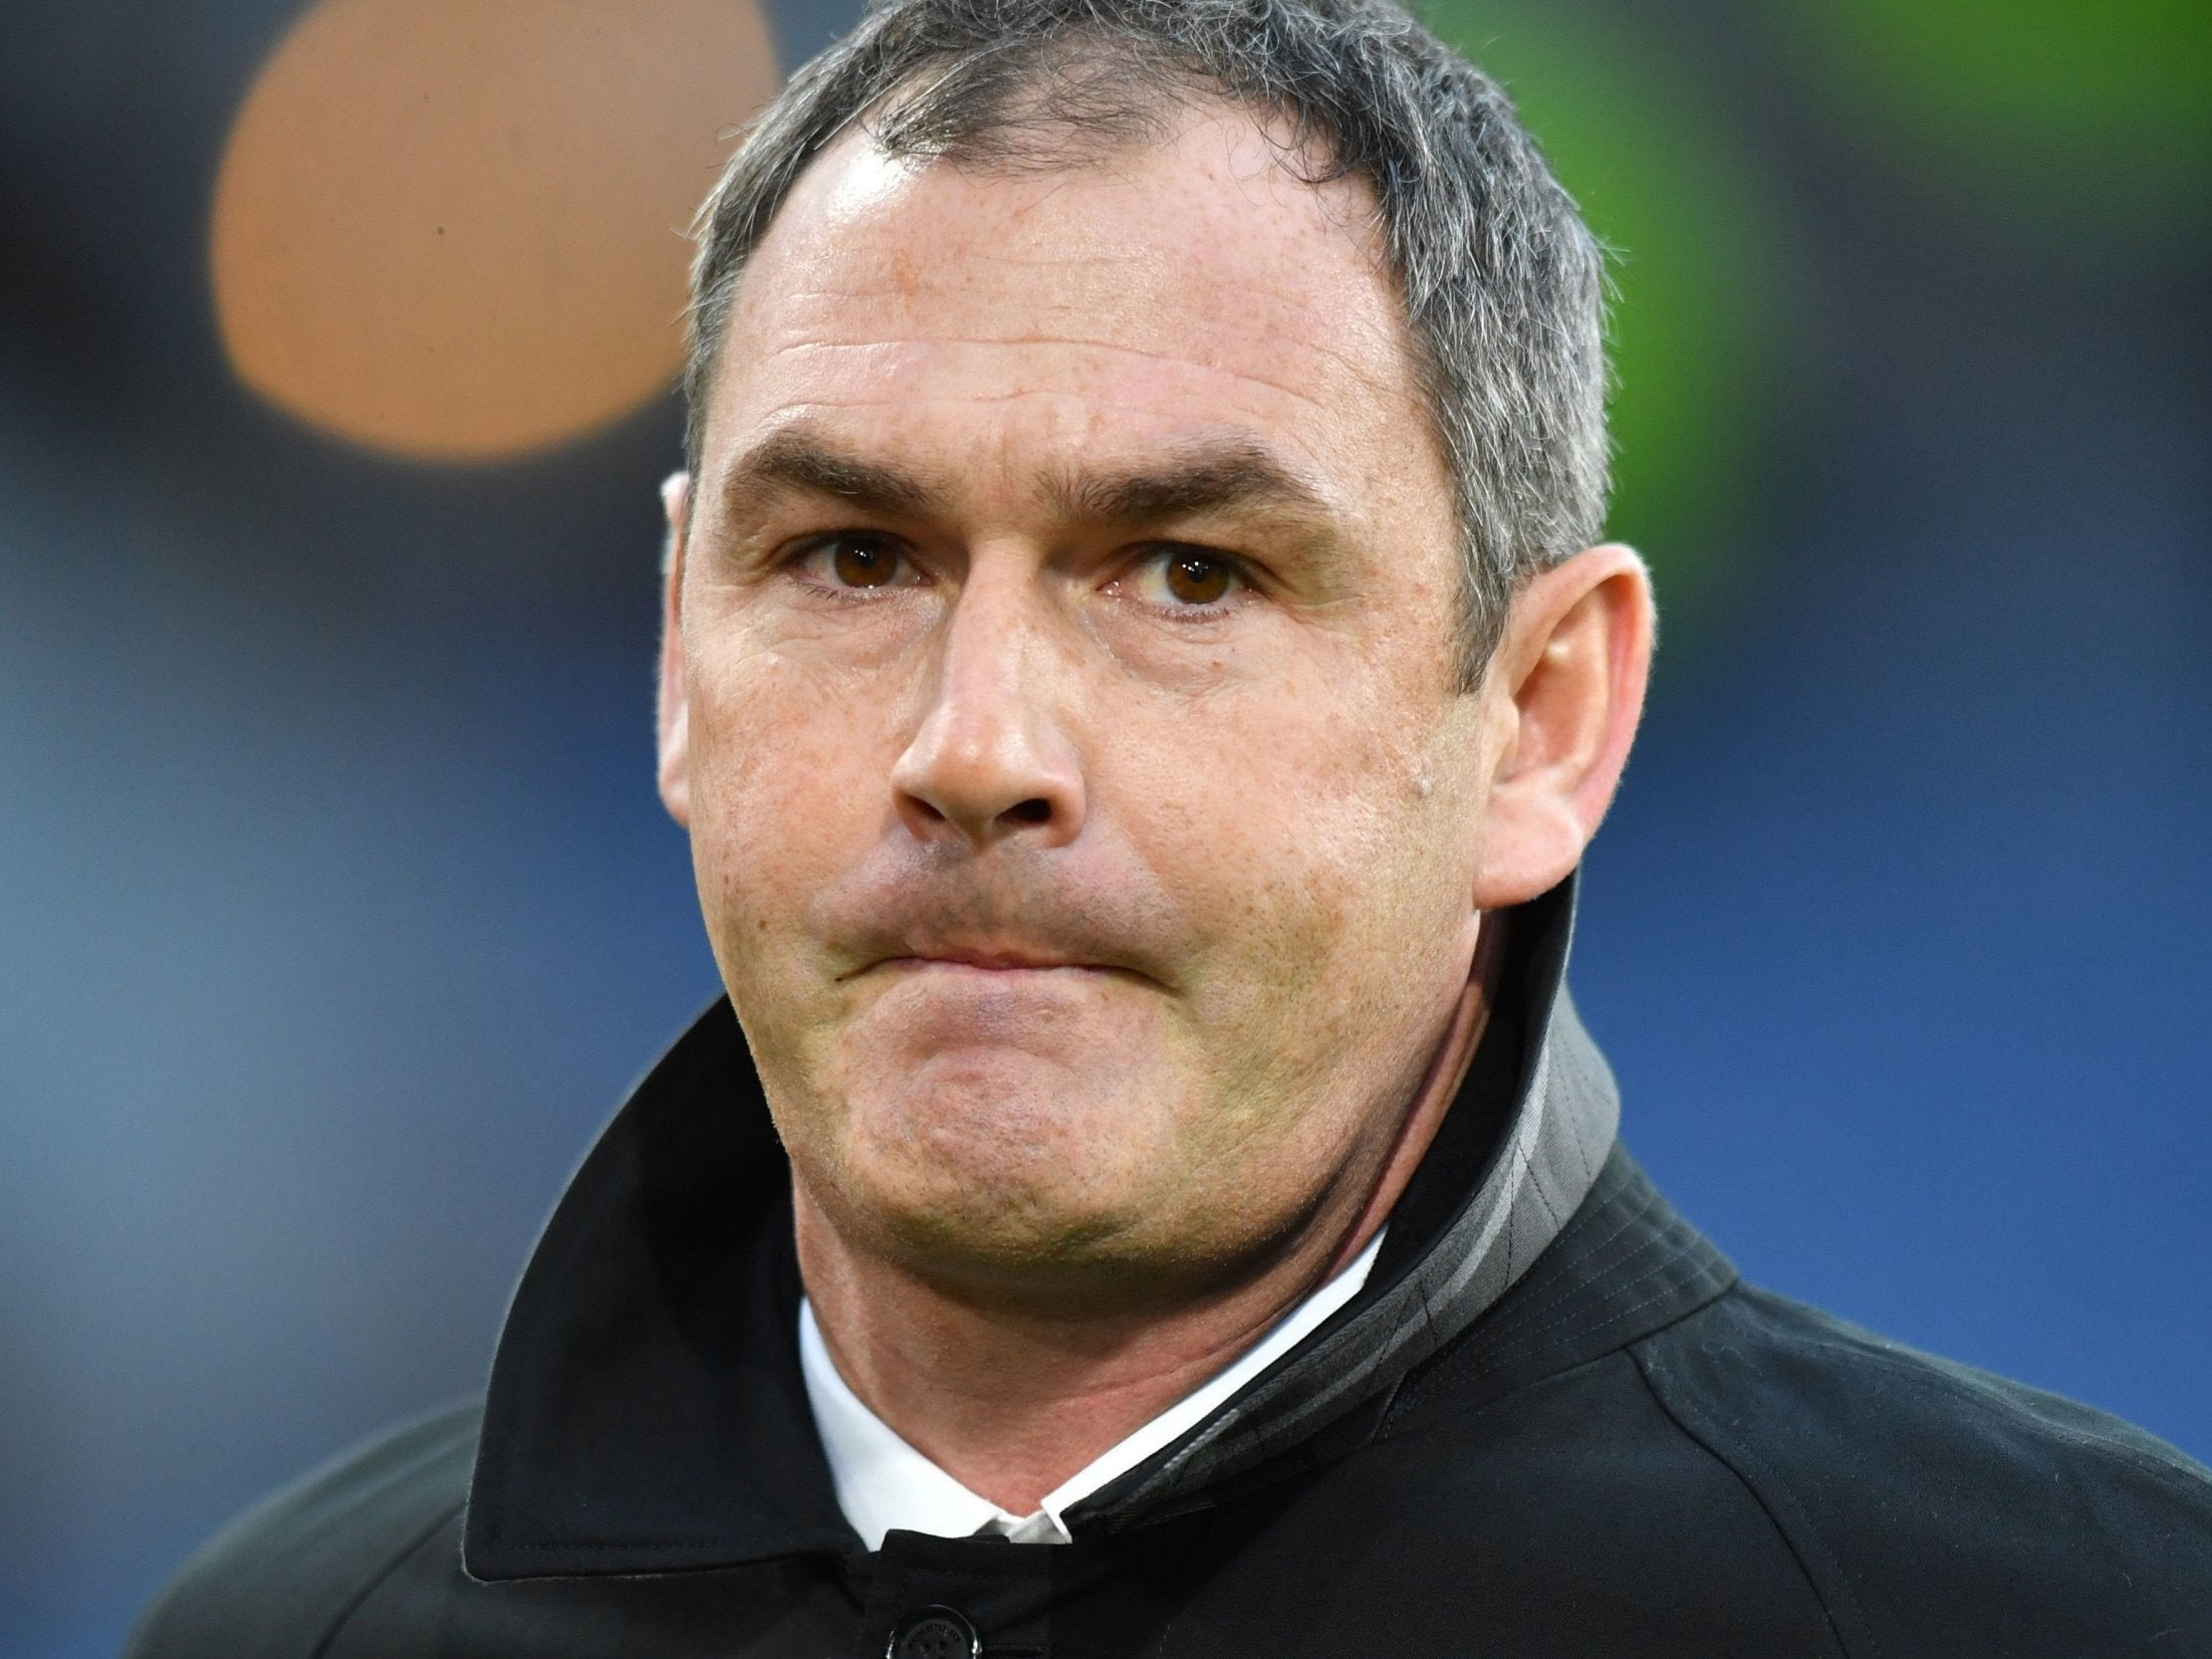 Paul Clement sacked by Reading after poor start leaves club outside relegation zone on goal difference